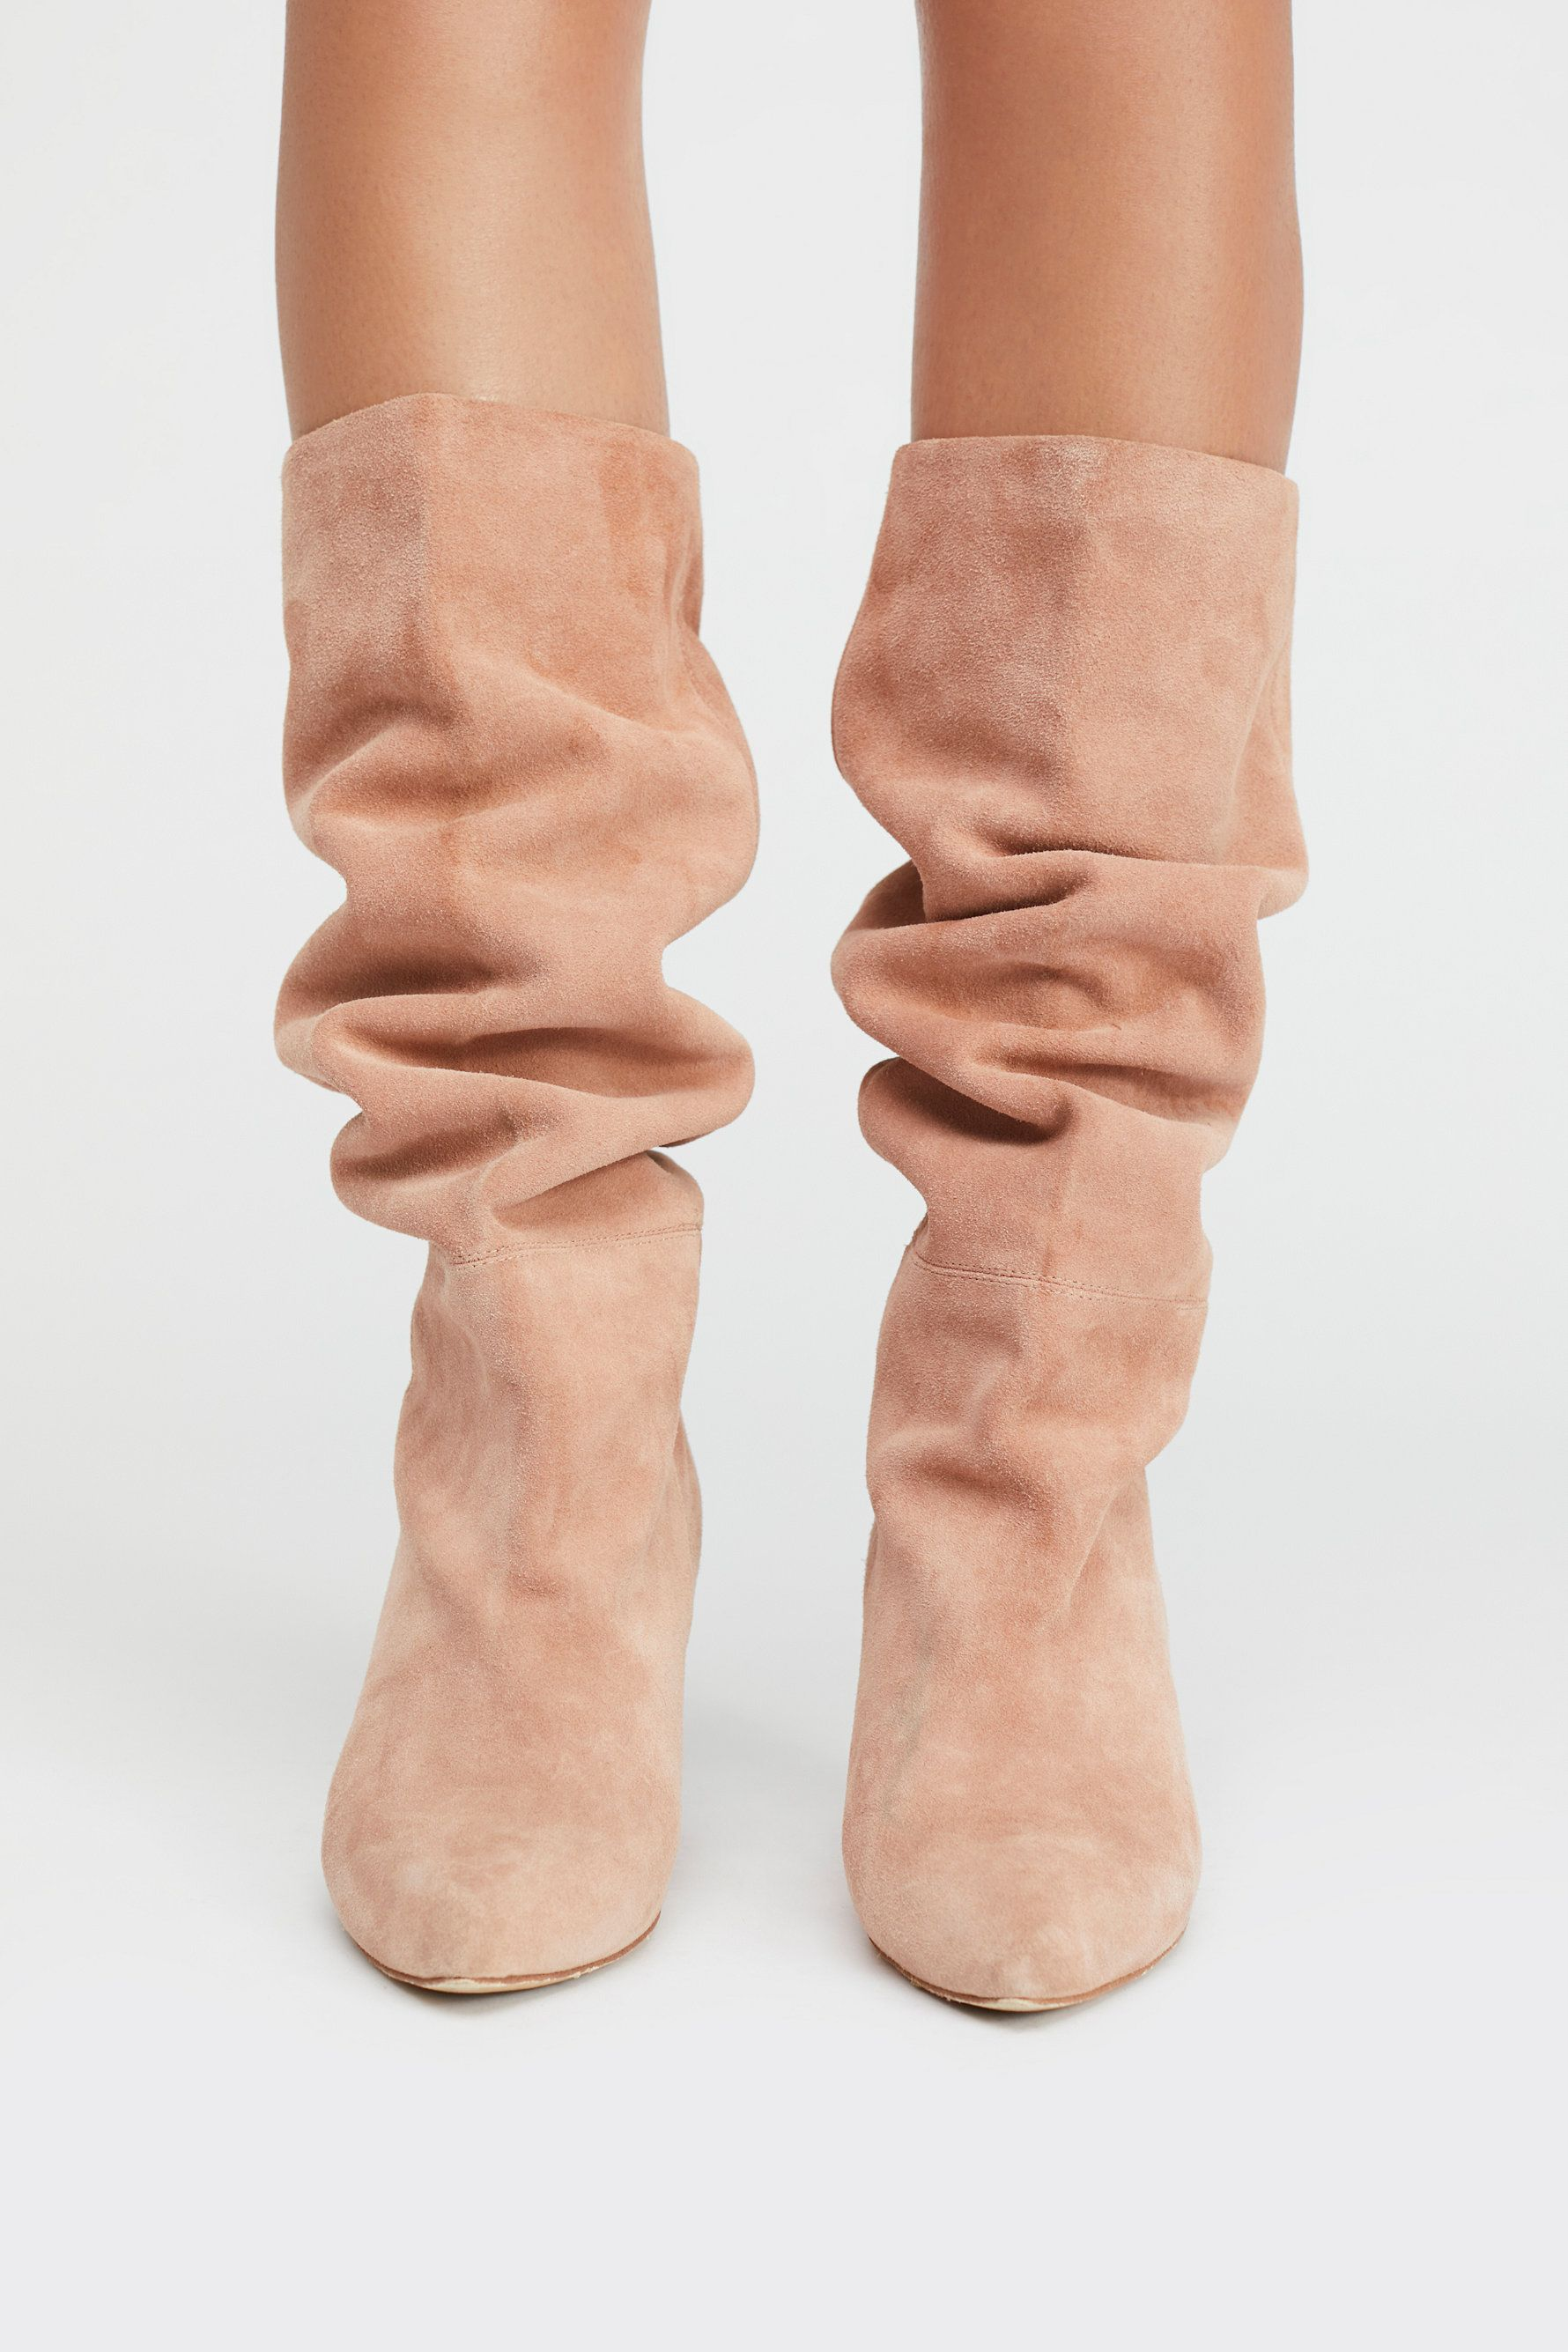 bf8c92e78cfa kdimoffphotography.com outfit ideas Modern Slouch Boot